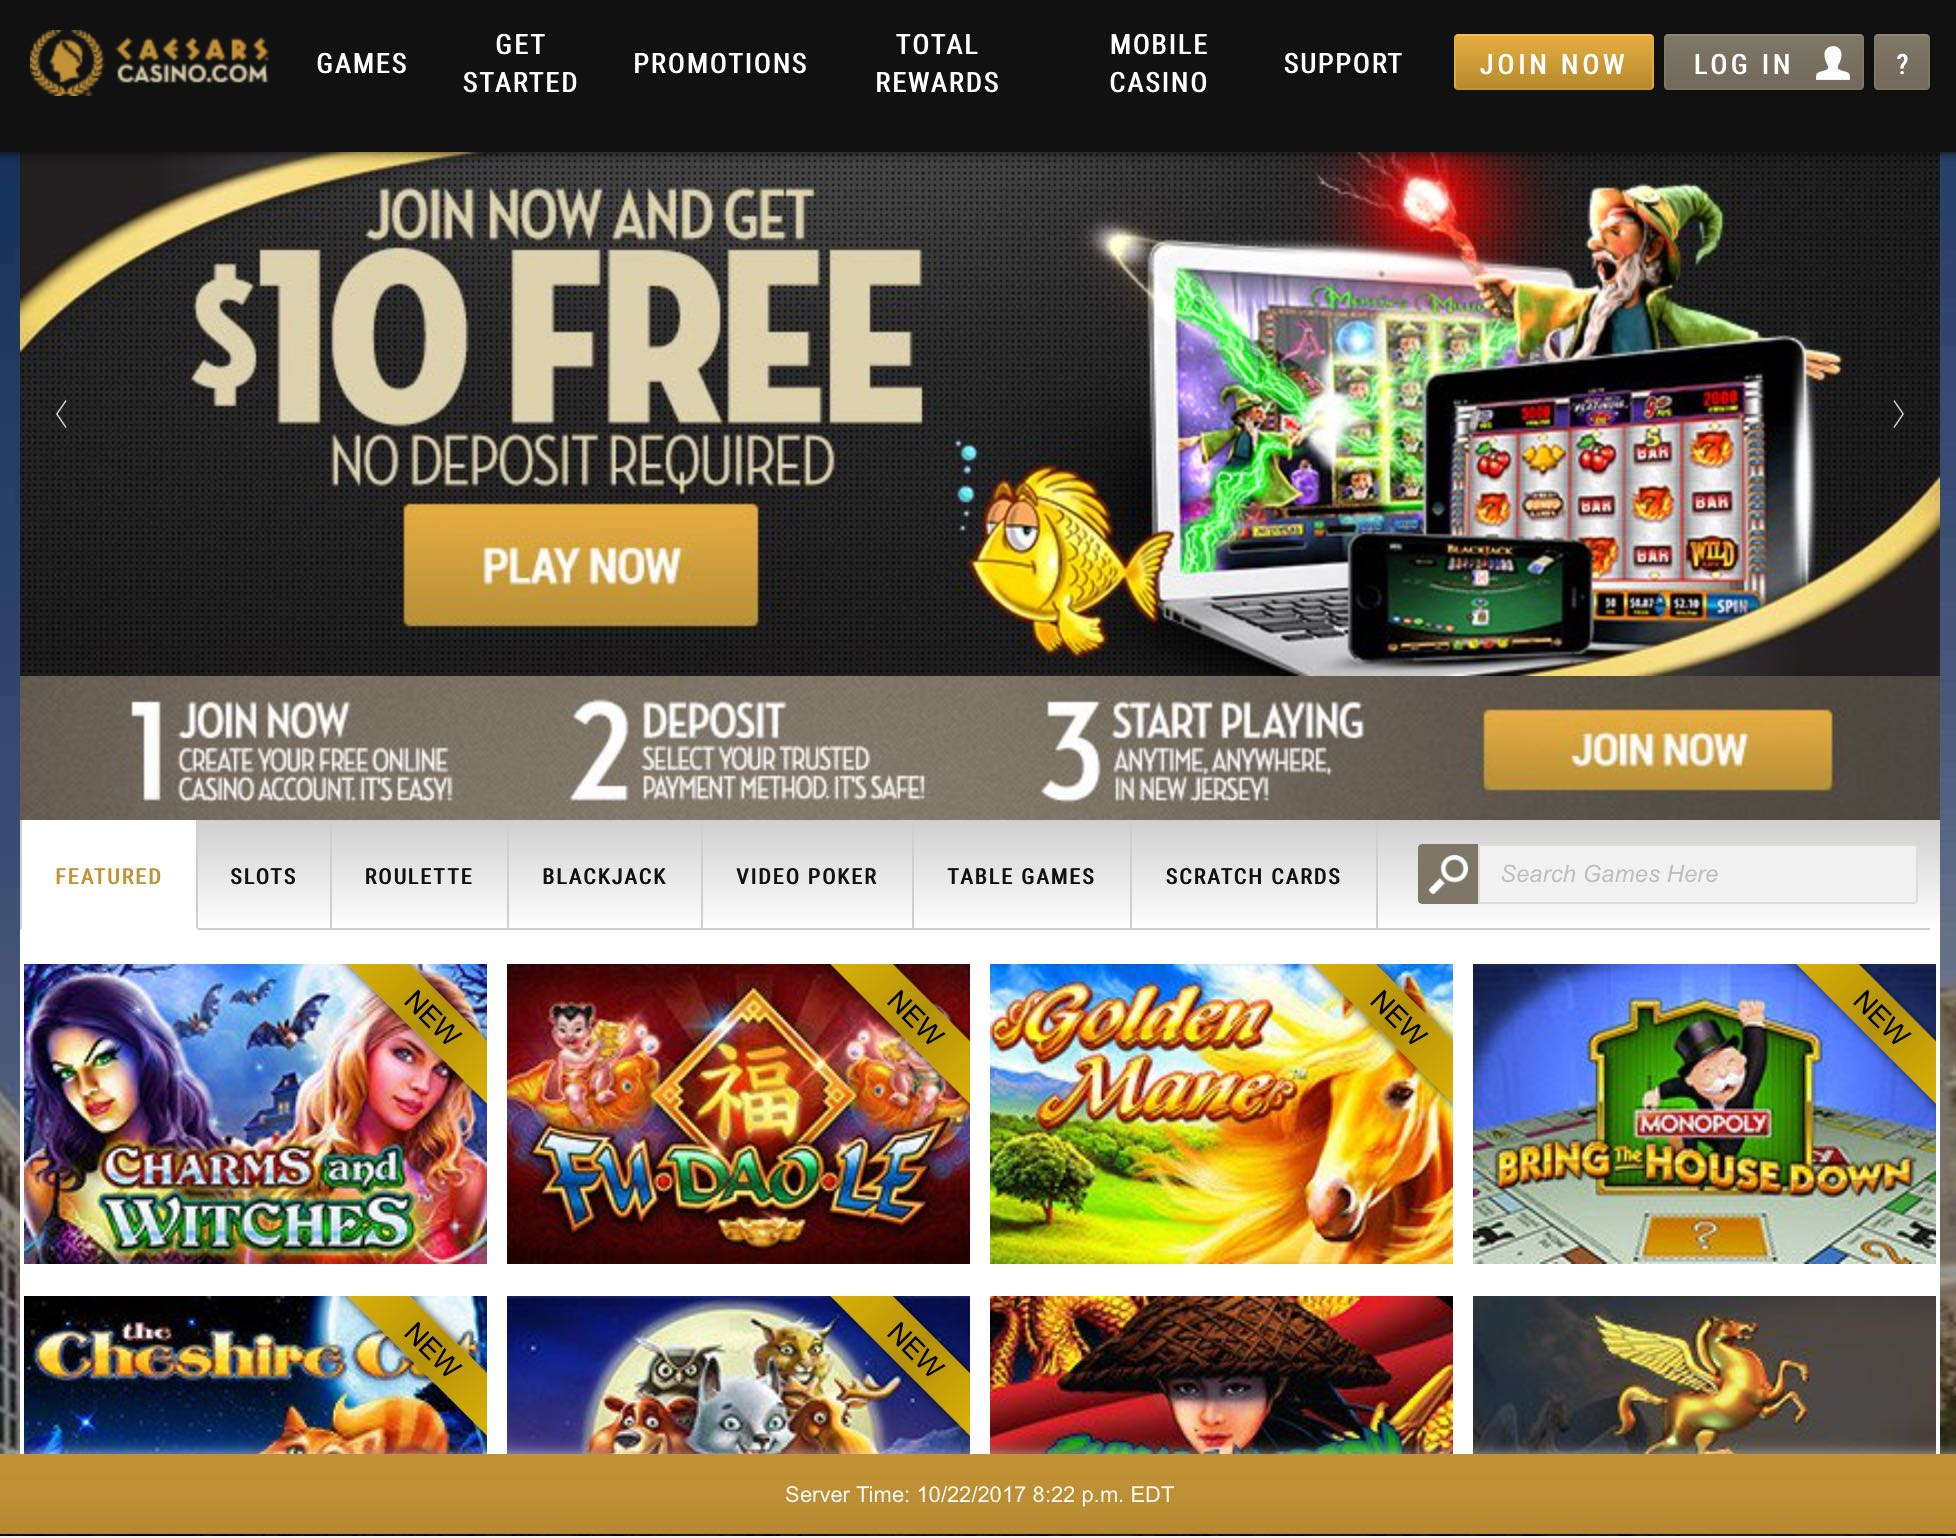 royal vegas casino no deposit bonus codes 2014